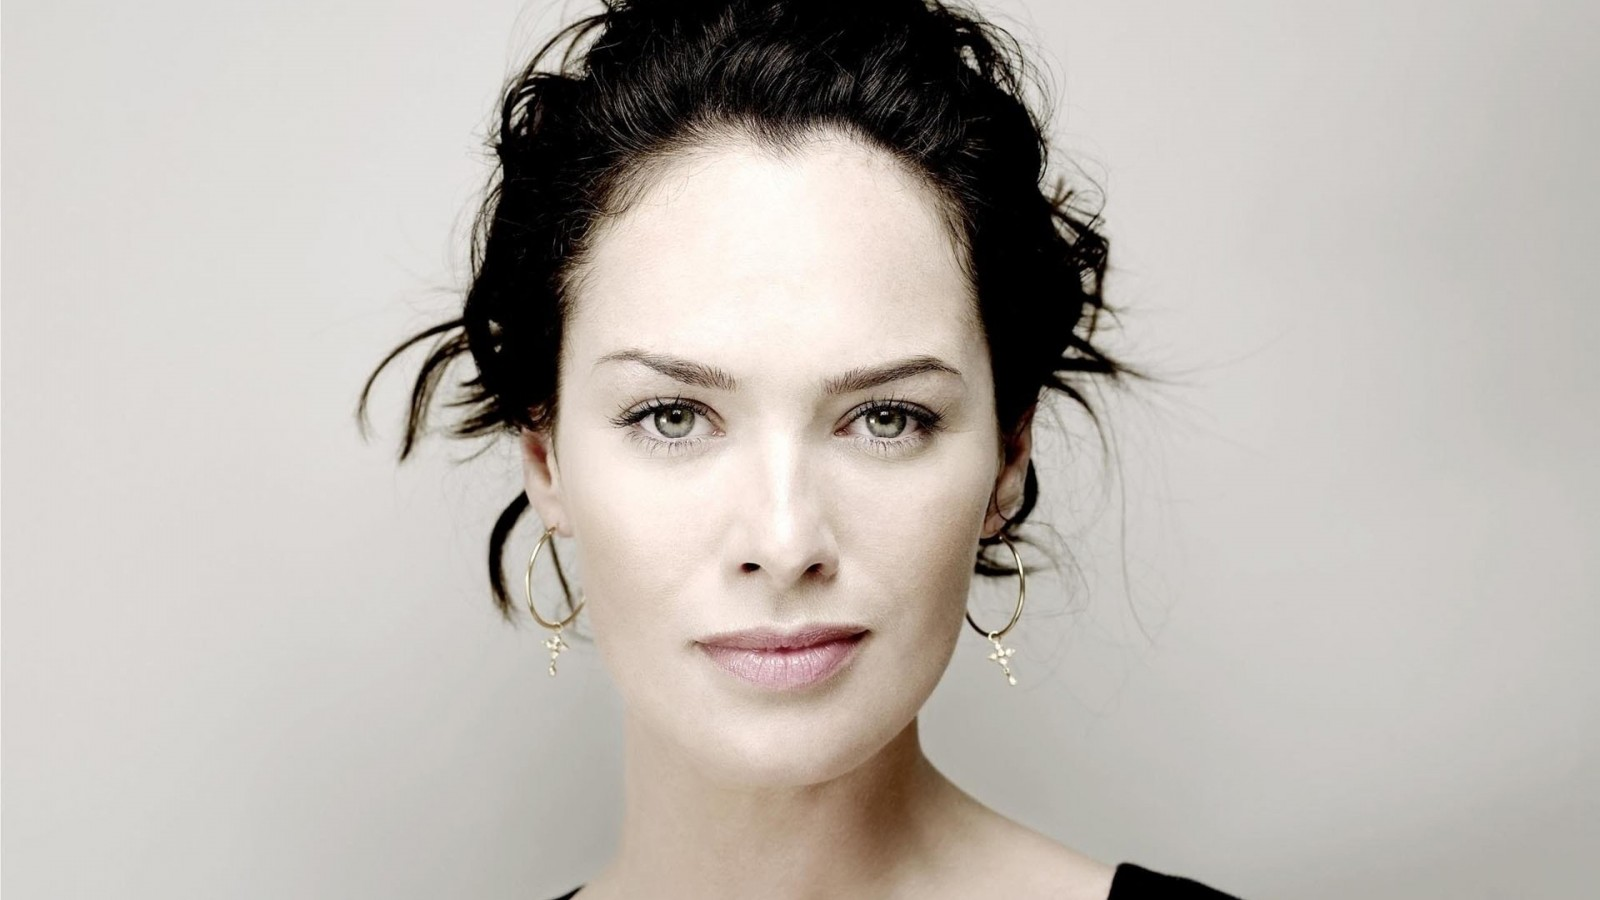 Lena Headey Portrait Wallpaper for Desktop 1600x900